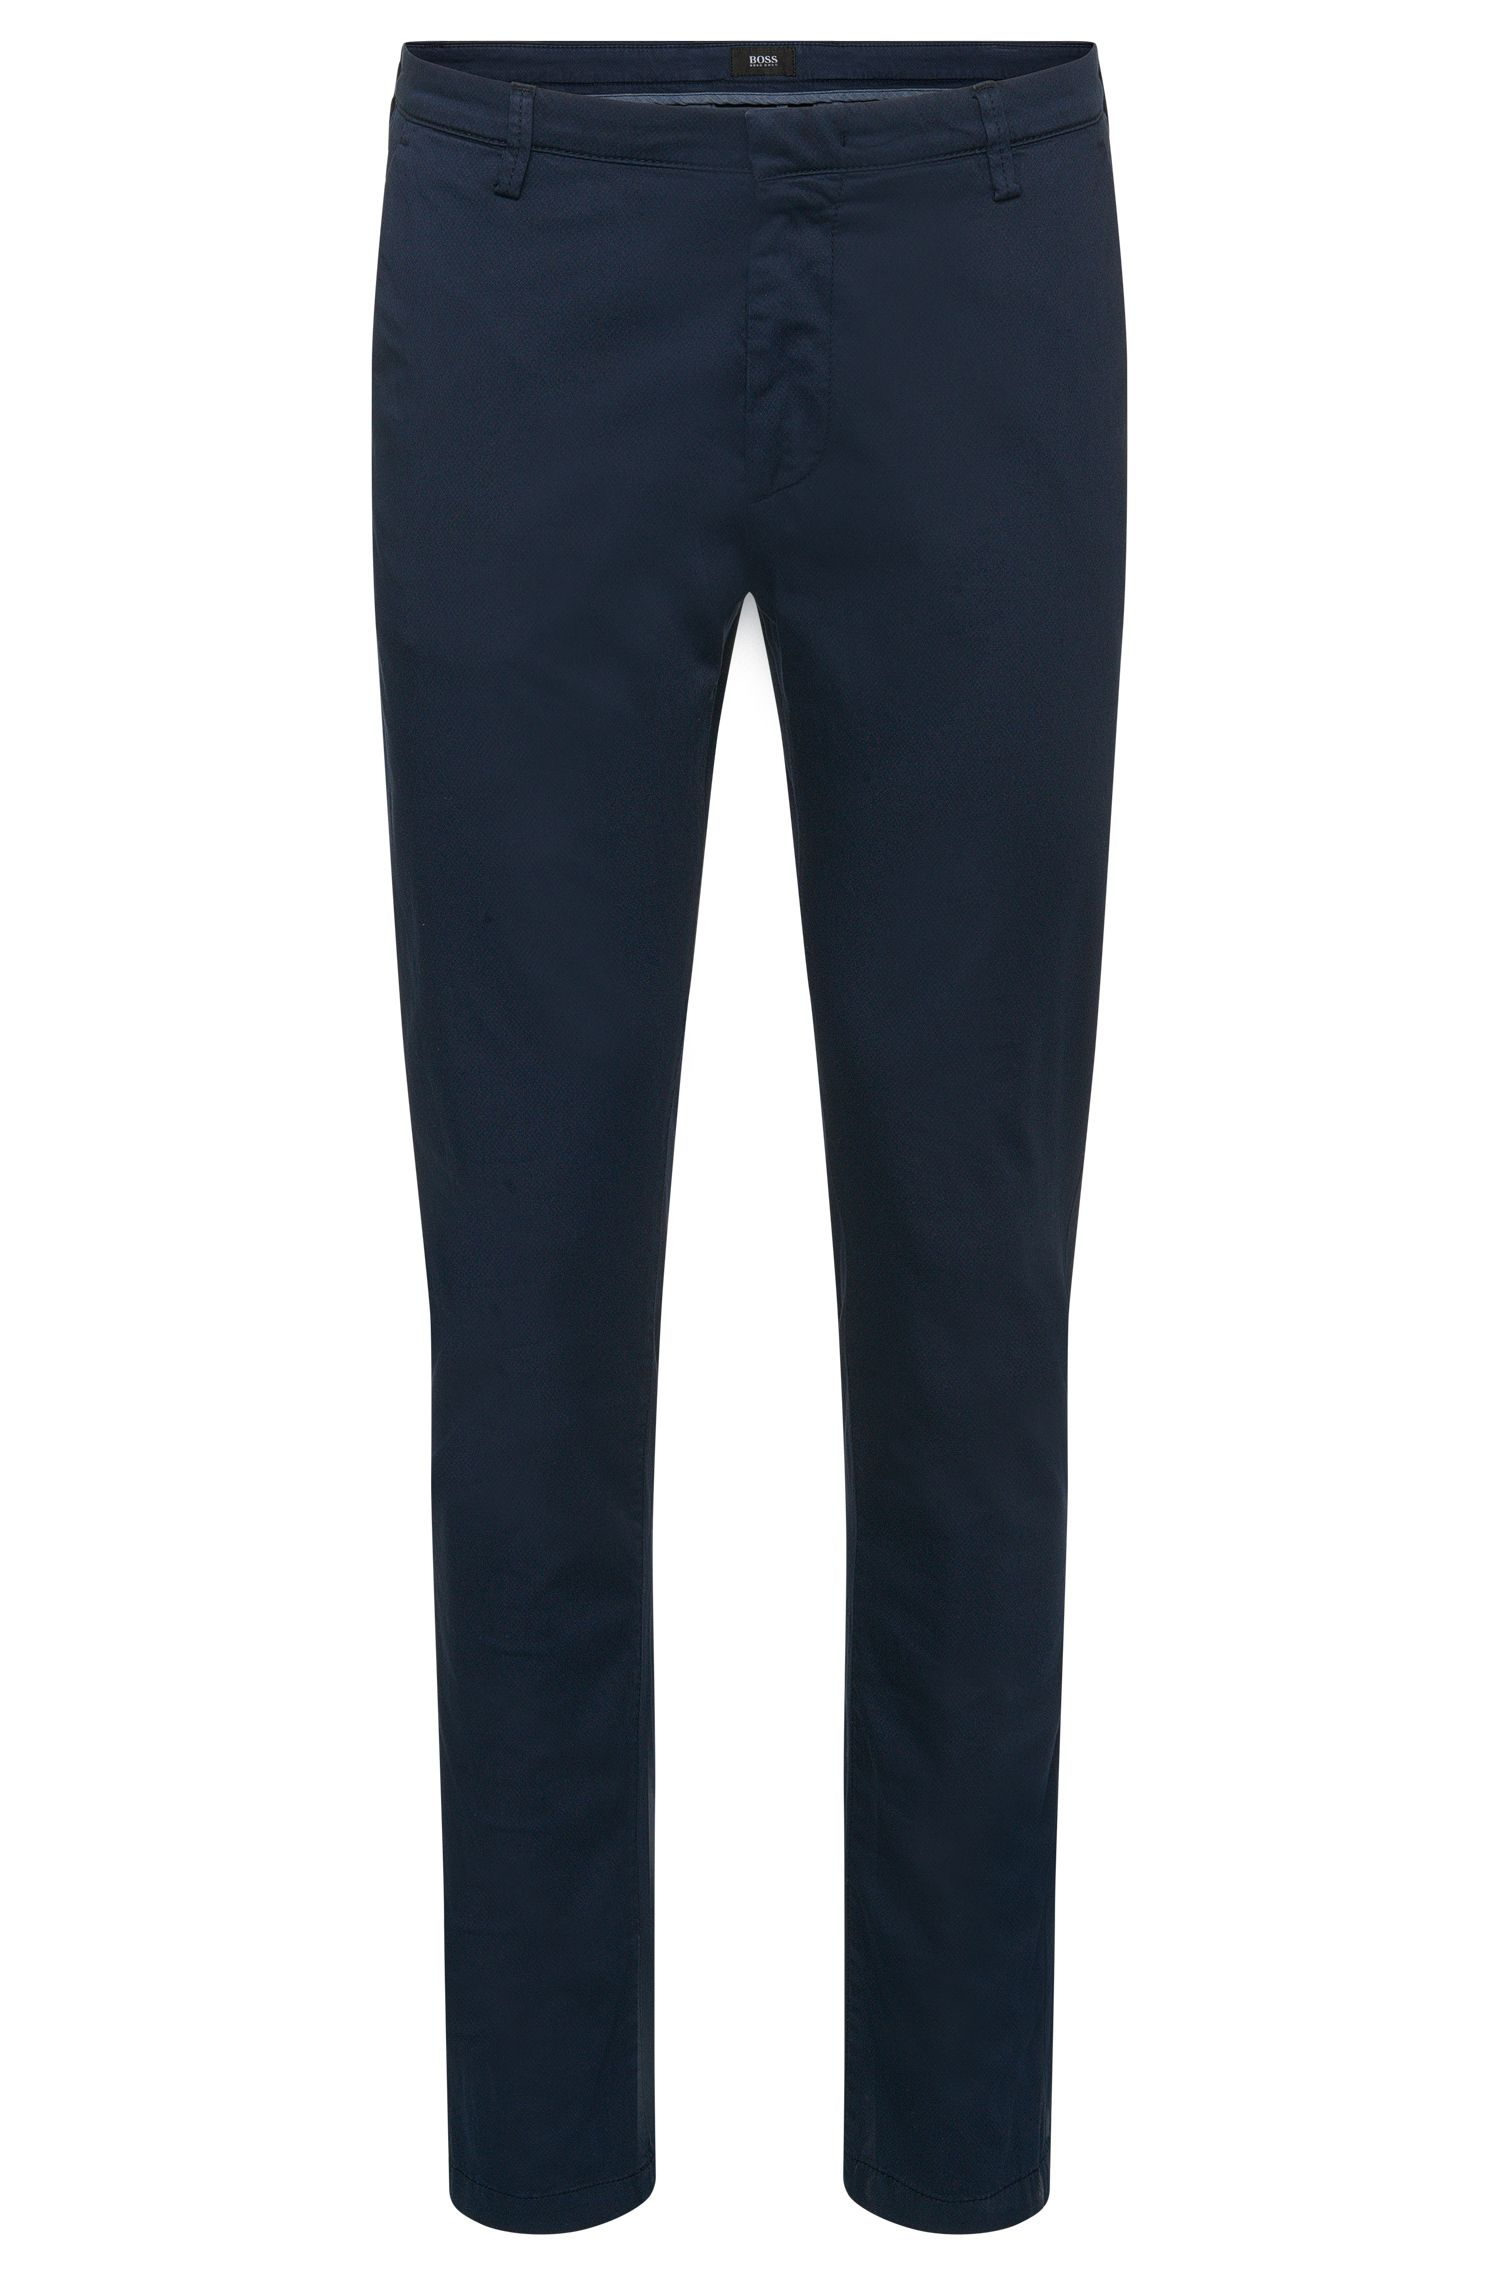 'Rice-D' | Slim Fit, Stretch Cotton Gabardine Printed Trousers